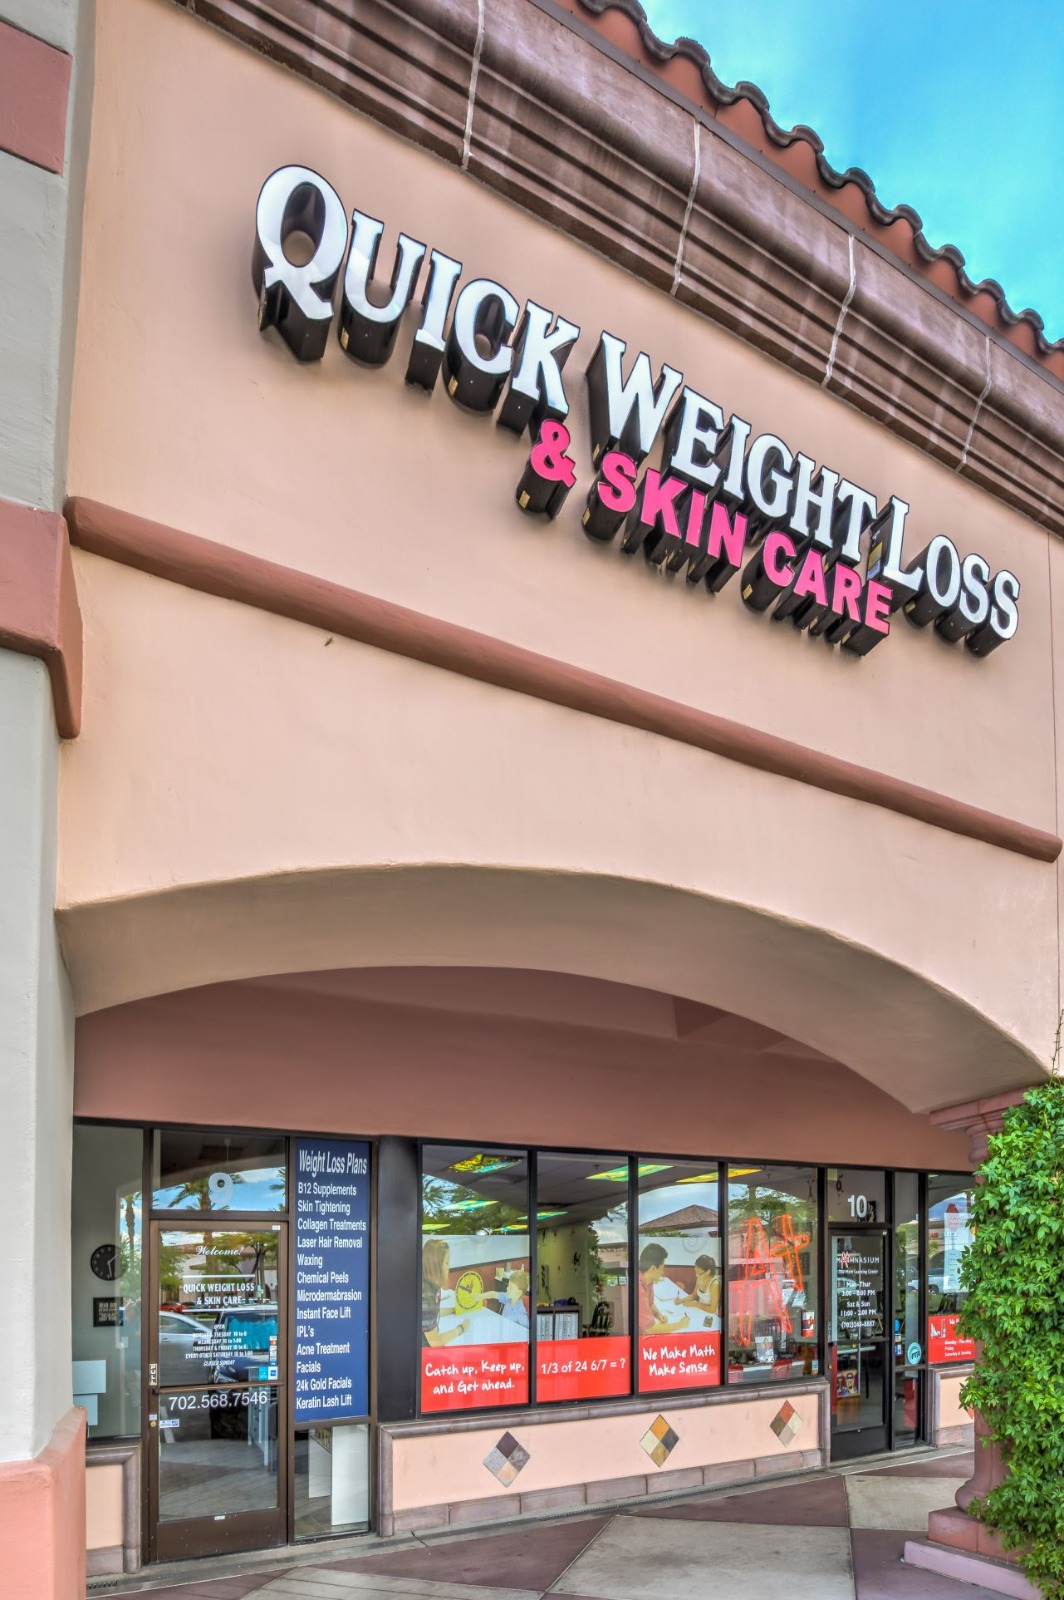 Quick weight loss & skin care building